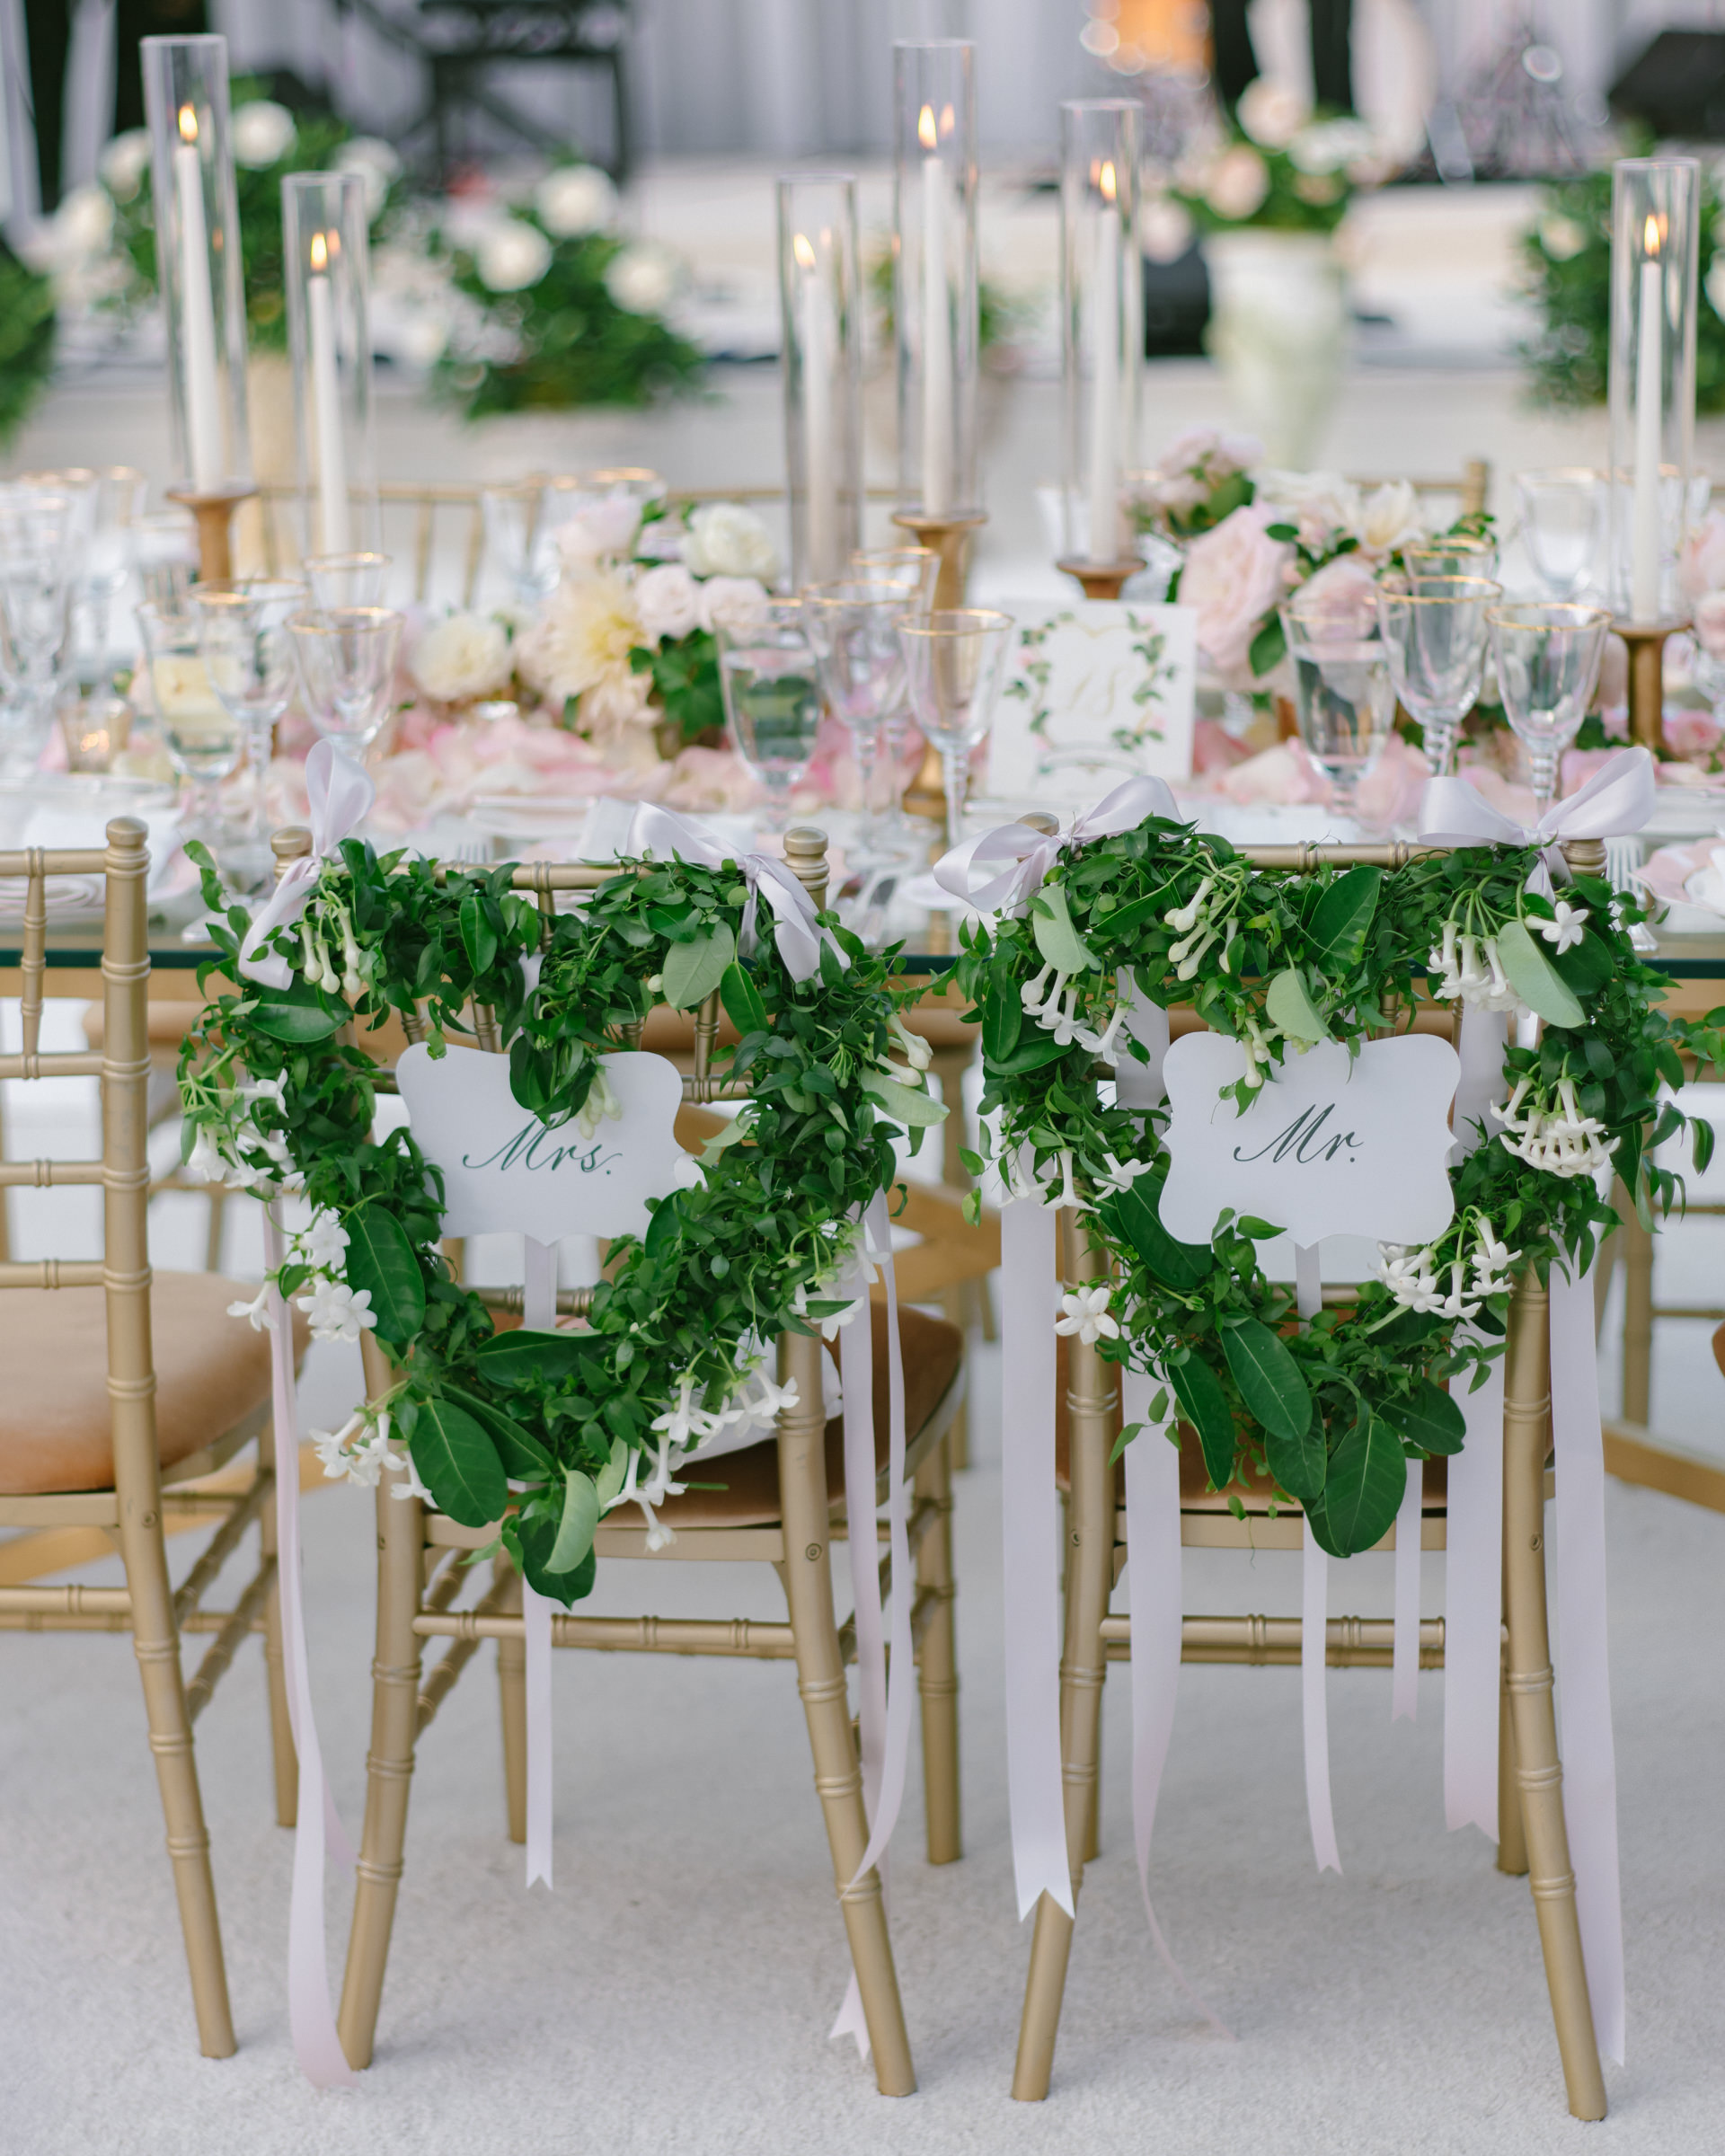 Reception table settings with Mr and Mrs heart shaped chair wreaths - photo by Amy and Stuart Photography